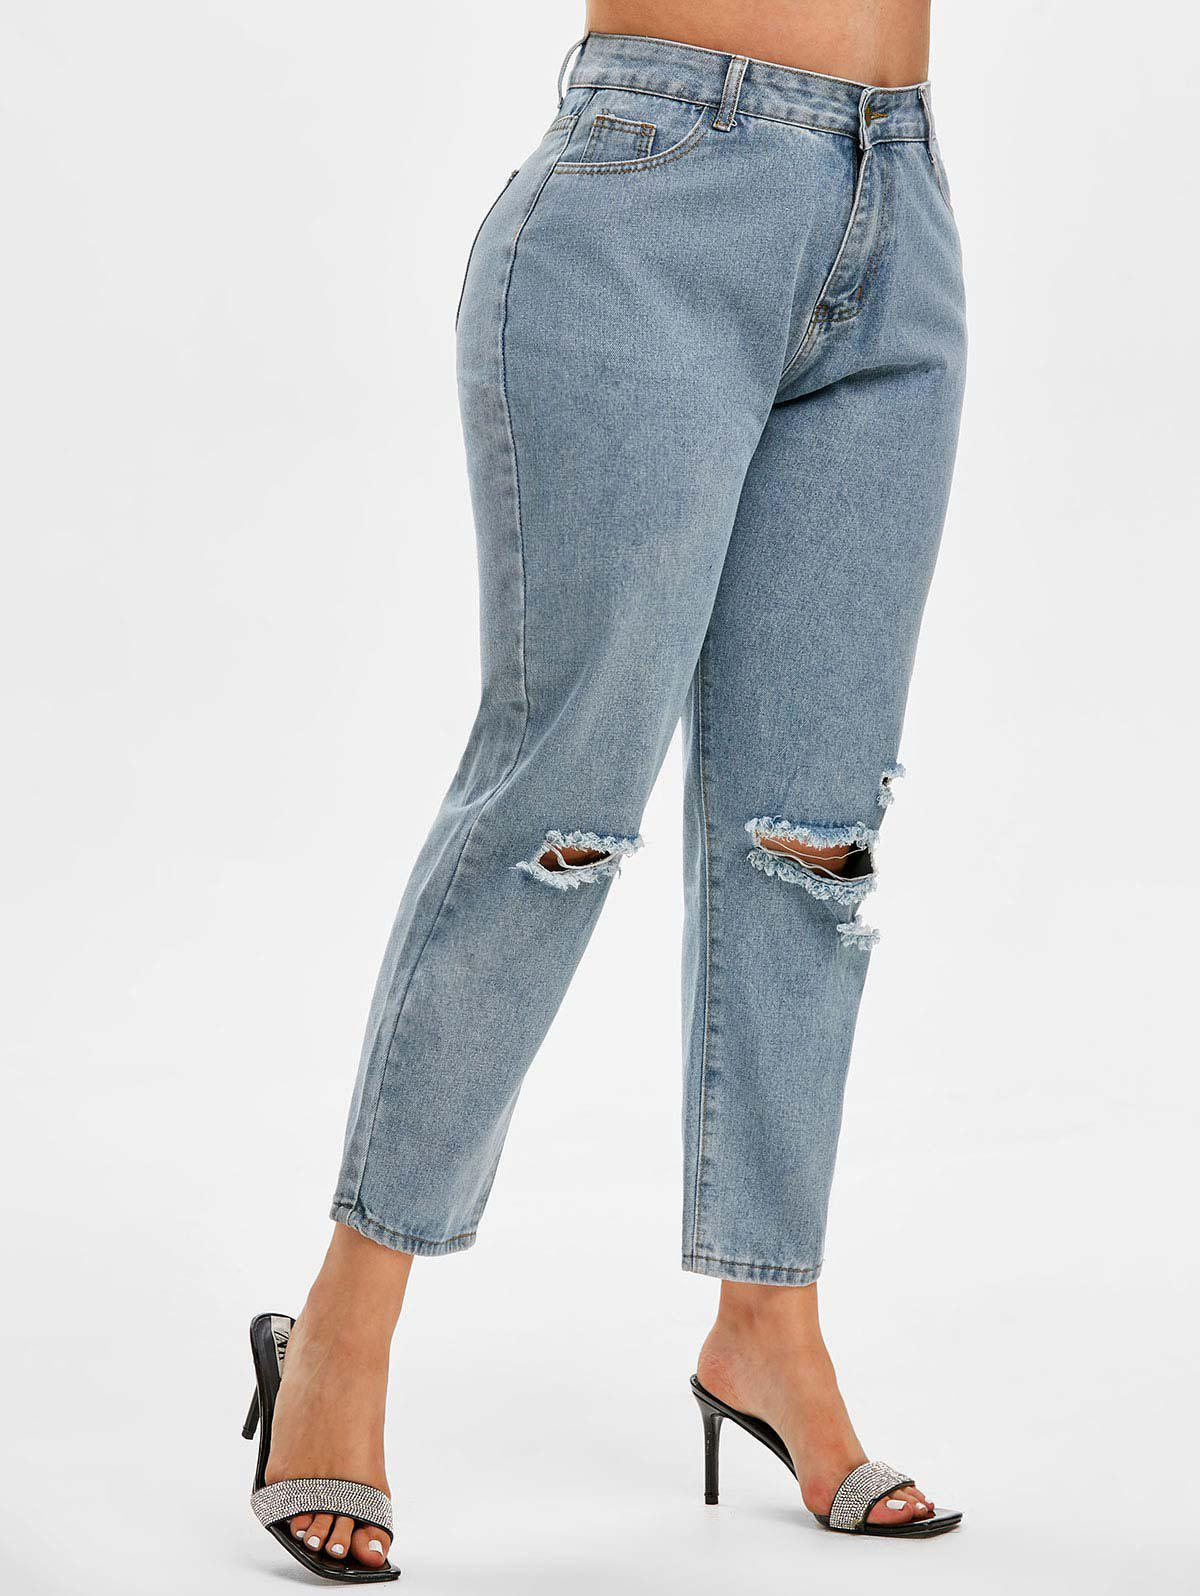 Buy Distressed Mid Rise Plus Size Tapered Jeans